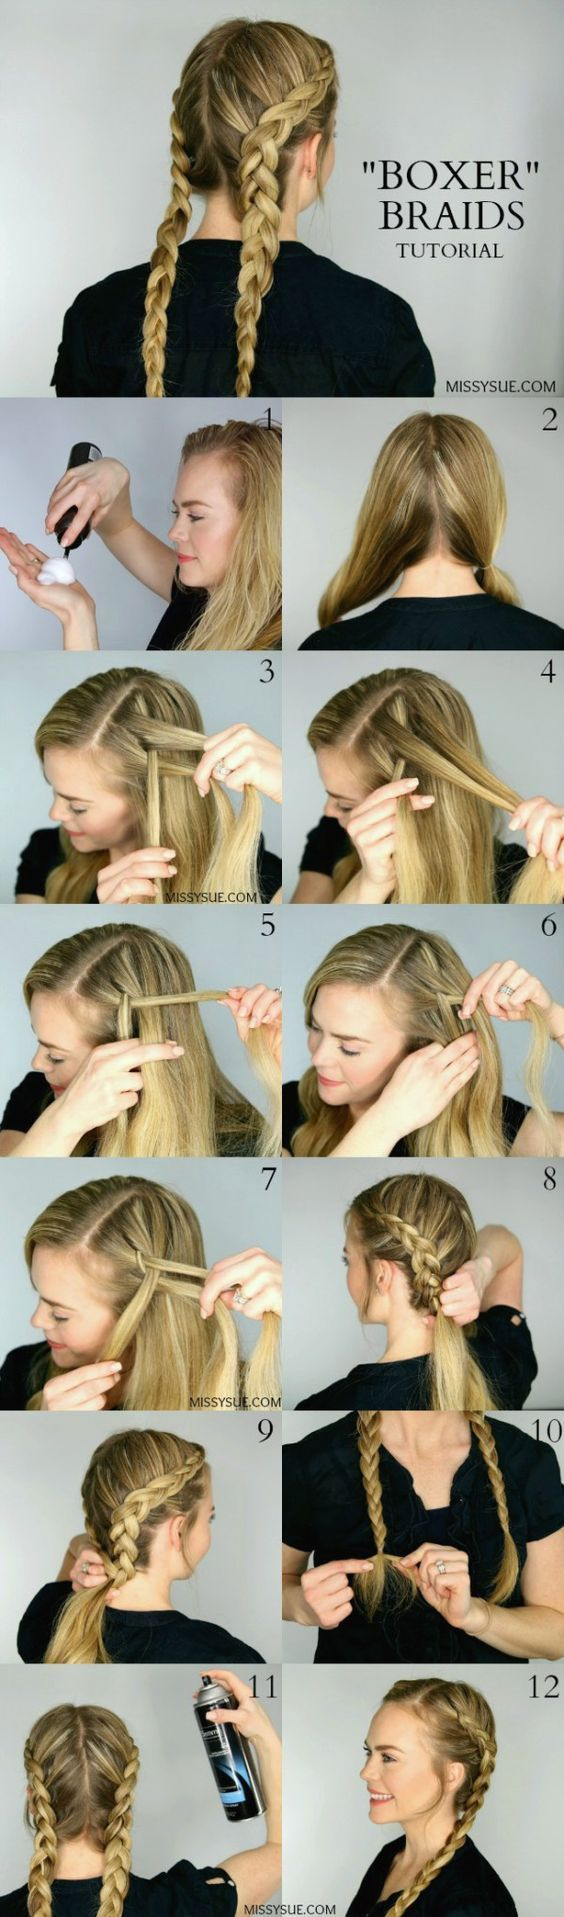 Swell 1000 Ideas About Braided Hair Tutorials On Pinterest Braid Hair Hairstyle Inspiration Daily Dogsangcom